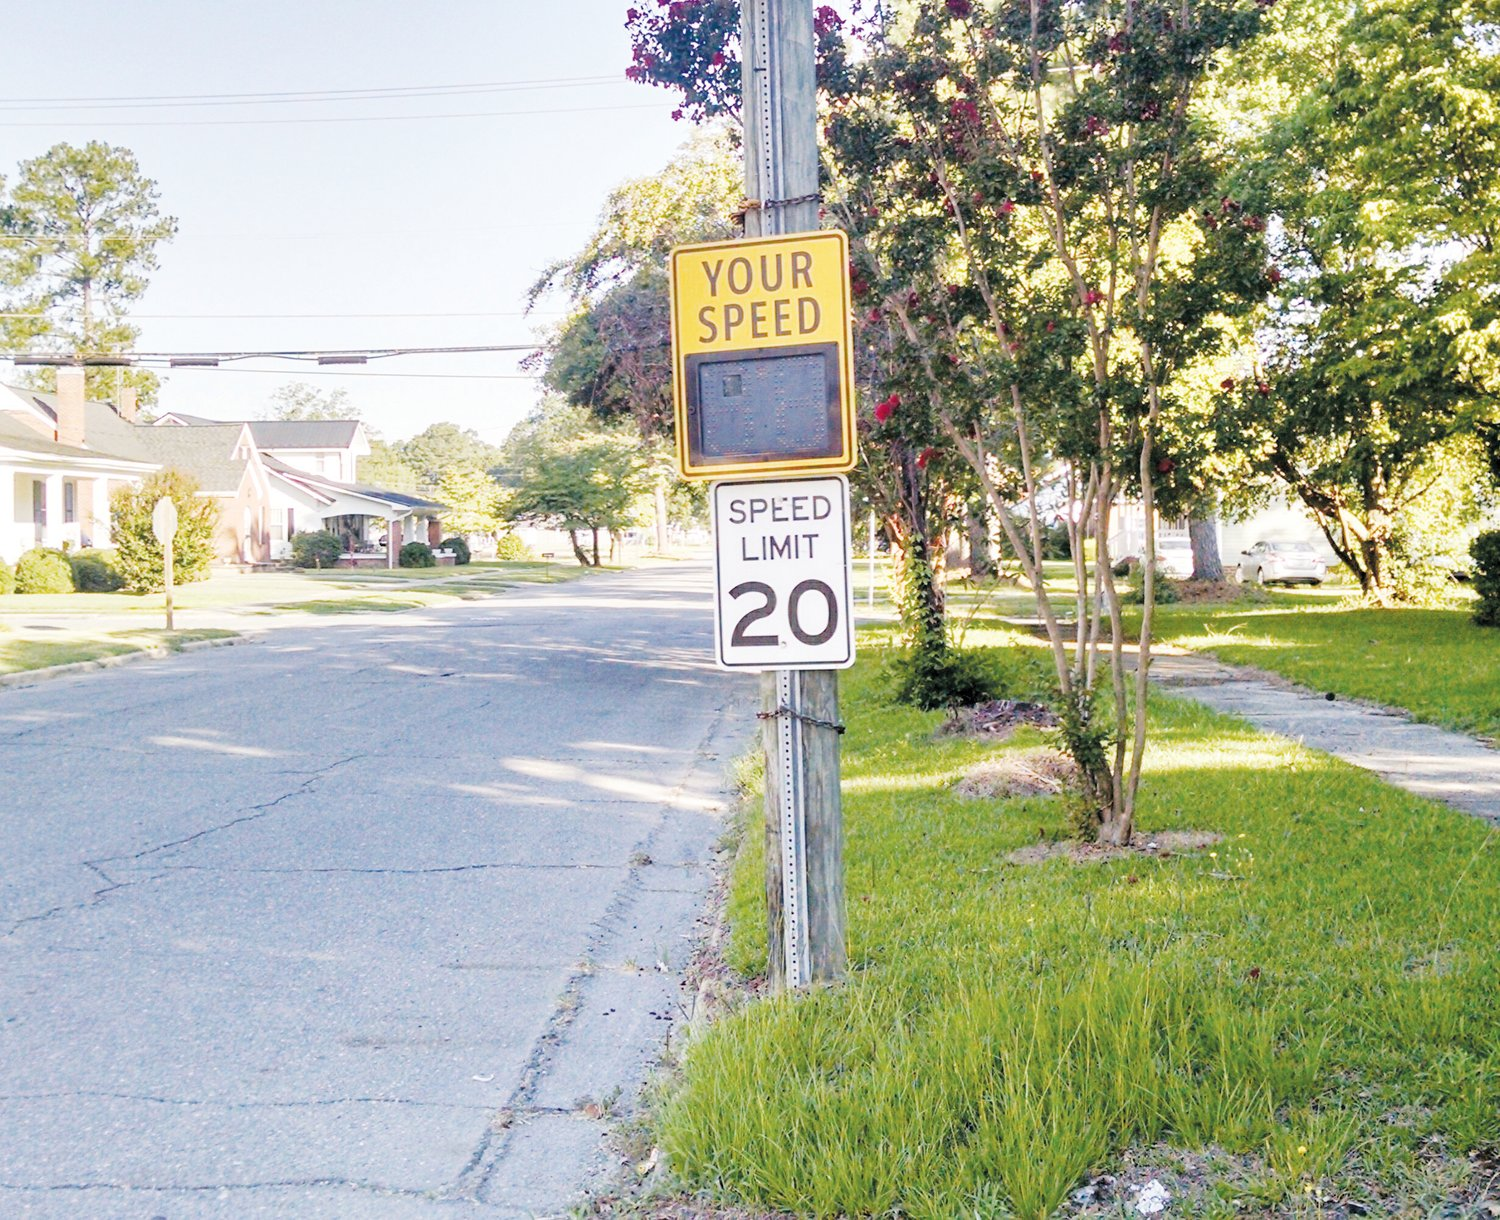 New speed limit signs on certain Mount Olive streets will soon be able to record the license plates of cars passing by. The drivers of cars caught speeding may soon receive citations. This 'Your Speed' sign was photographed on West Pollock Street. Mount Olive leaders have not disclosed where the camera signs will be placed.